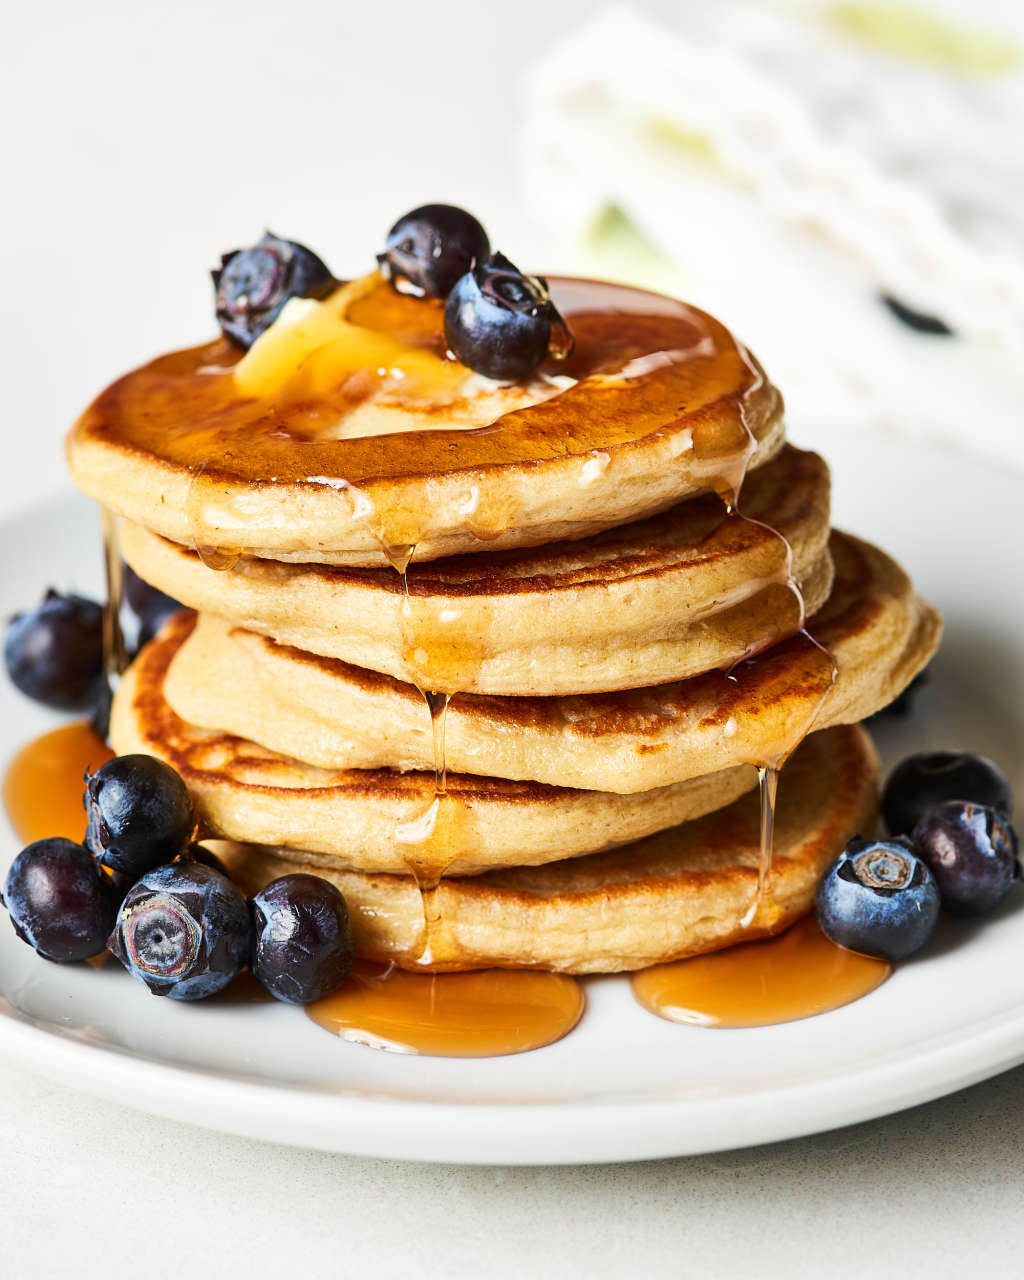 3-Ingredient Pancakes Are the Easiest High-Protein Breakfast